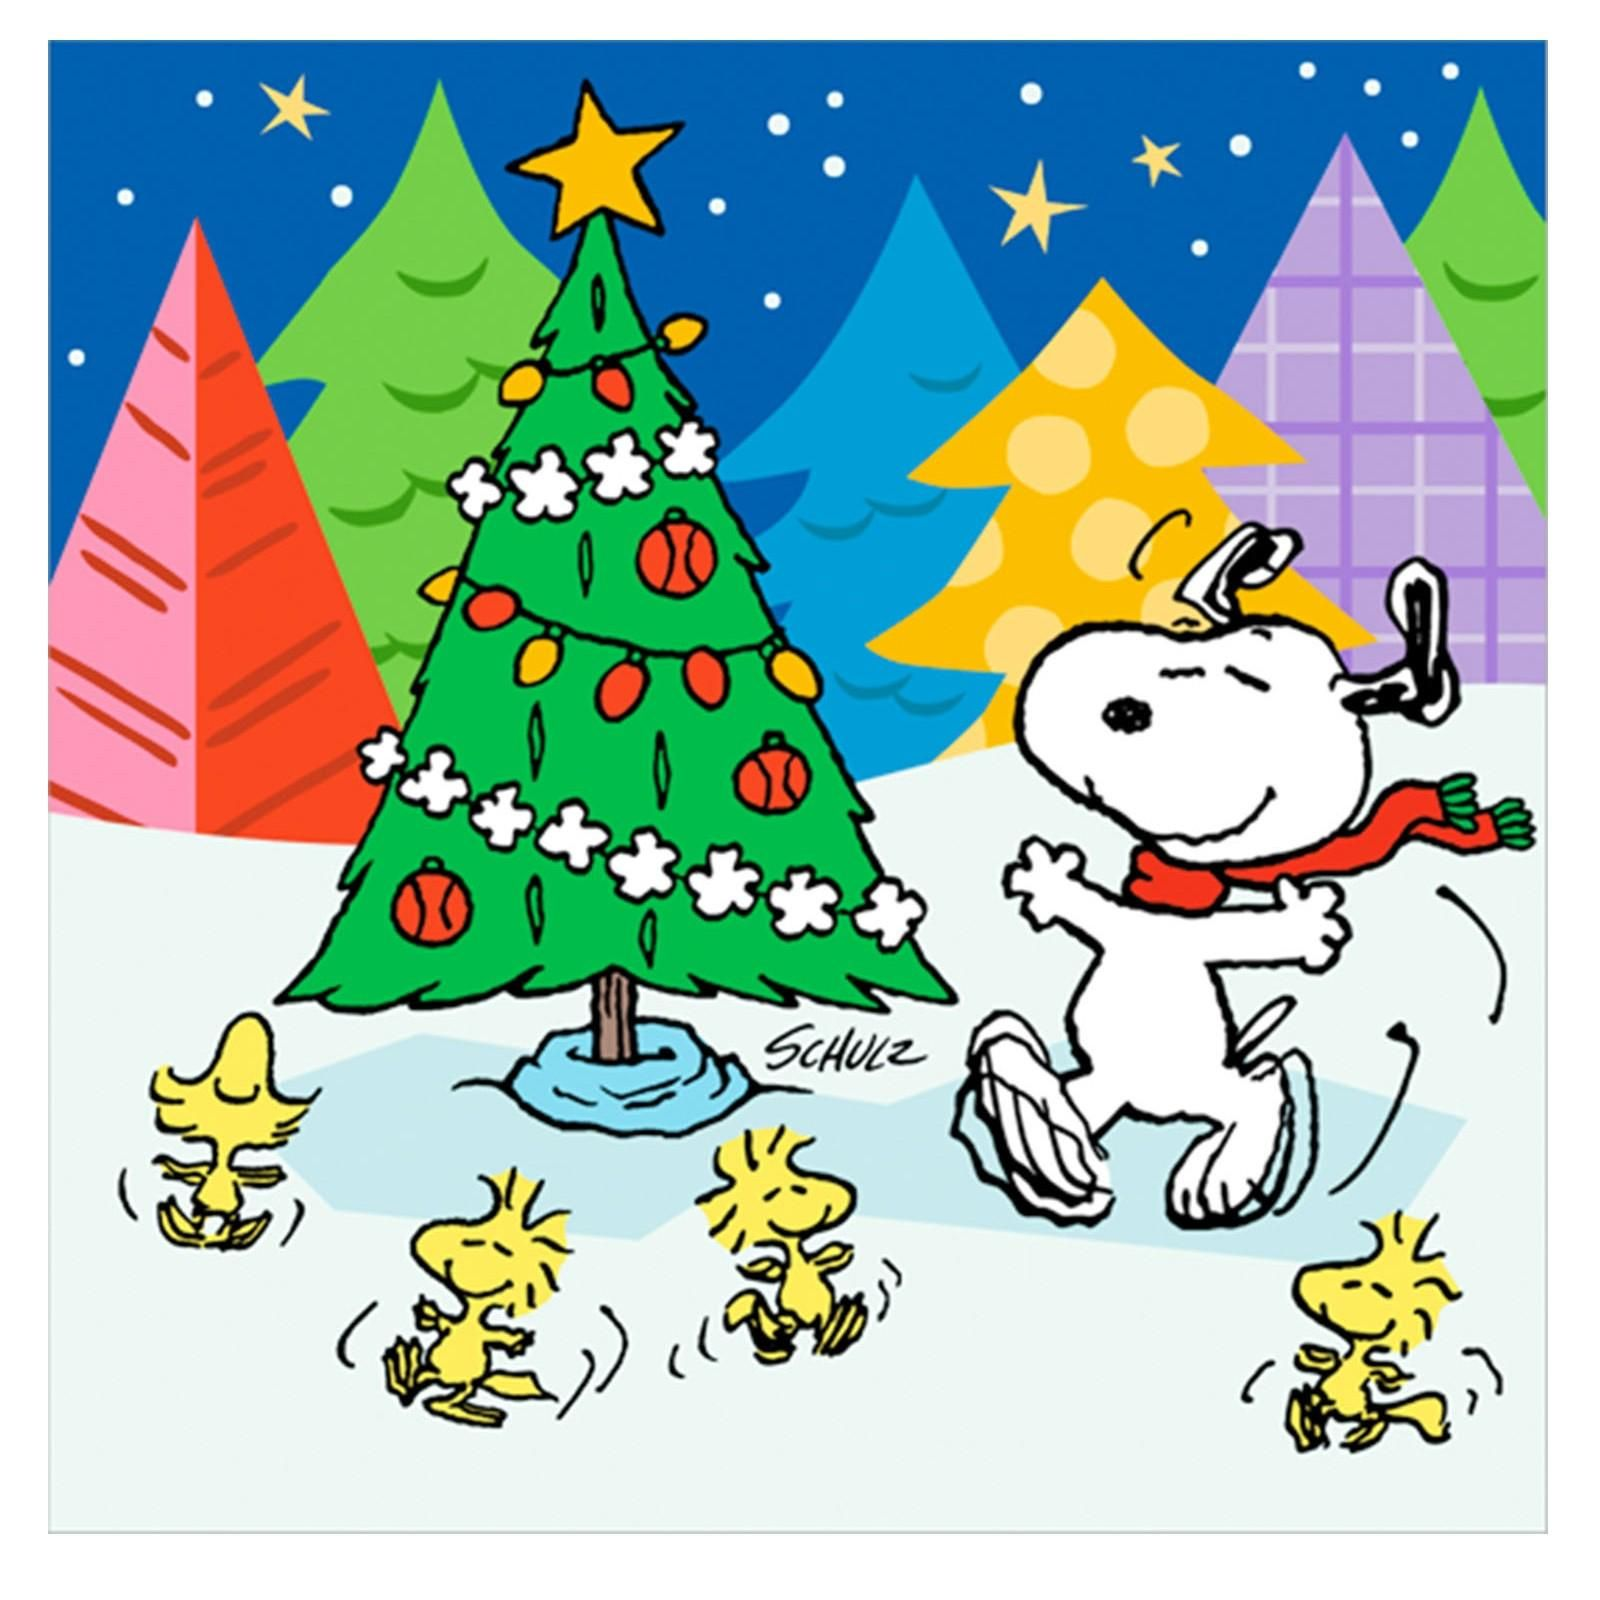 Snoopy, Woodstock & his pals dancing around the Christmas tree ...